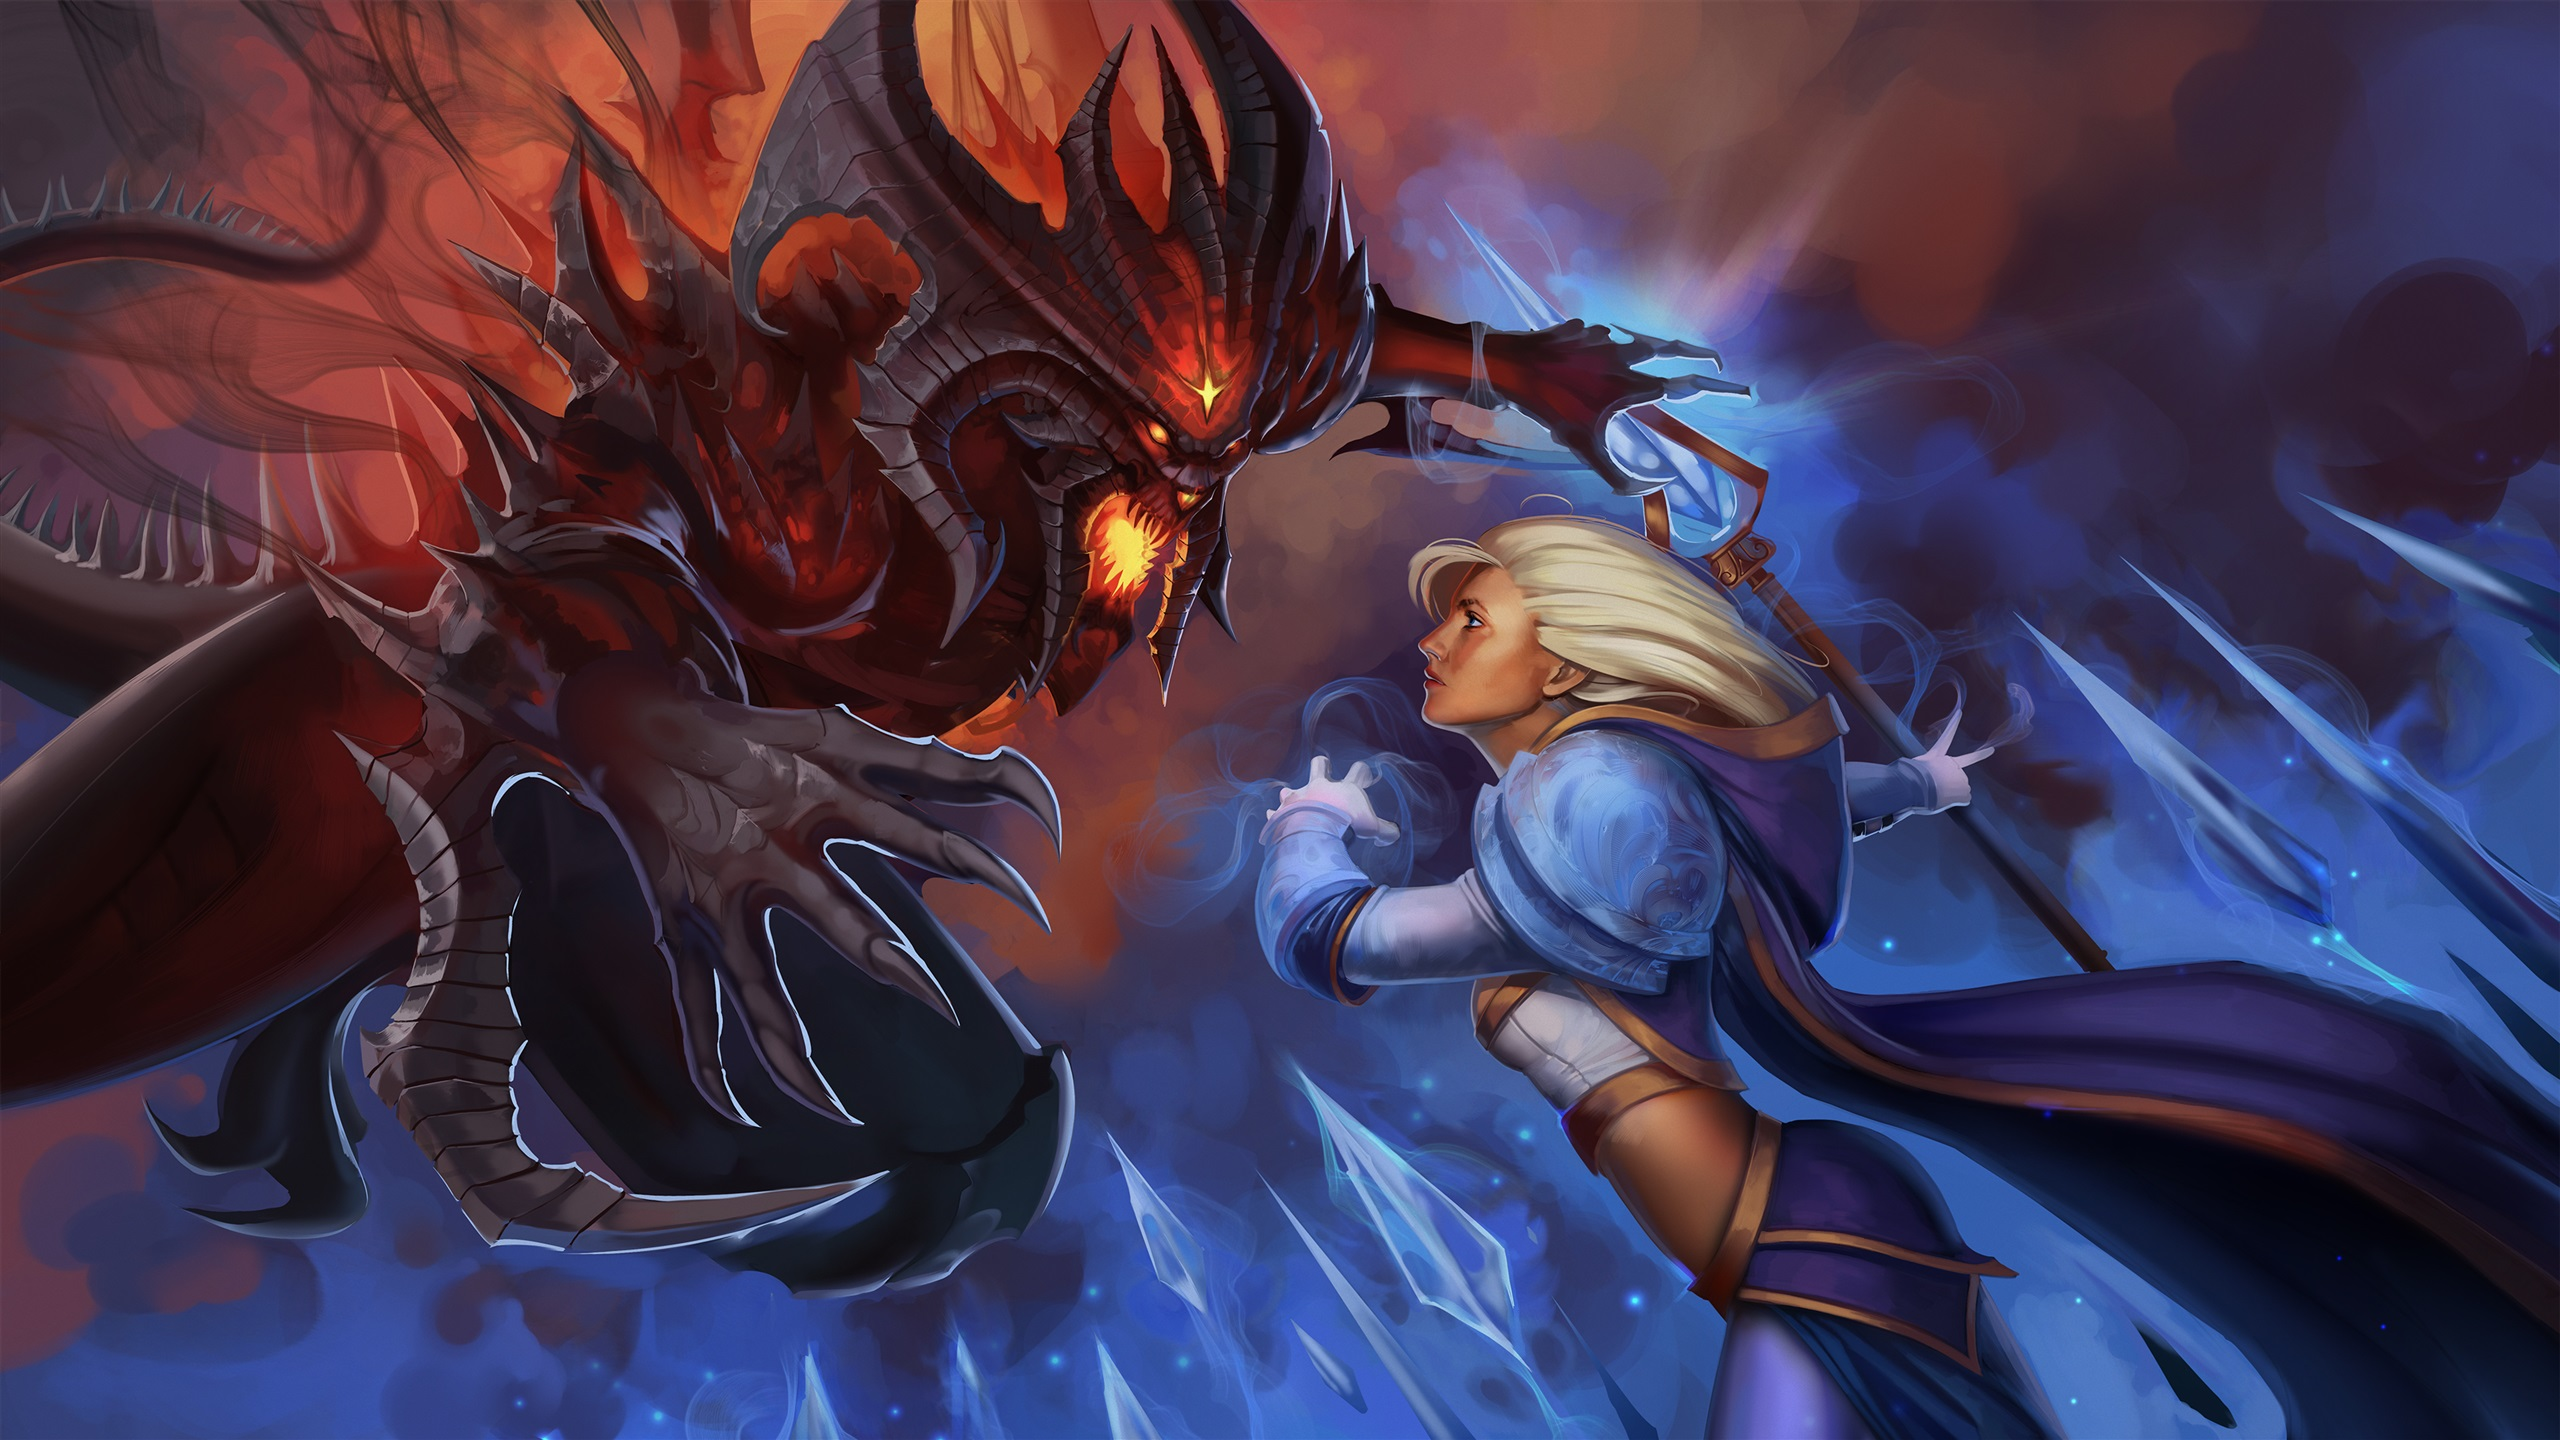 Wallpaper Heroes Of The Storm Girl And Monster Warcraft